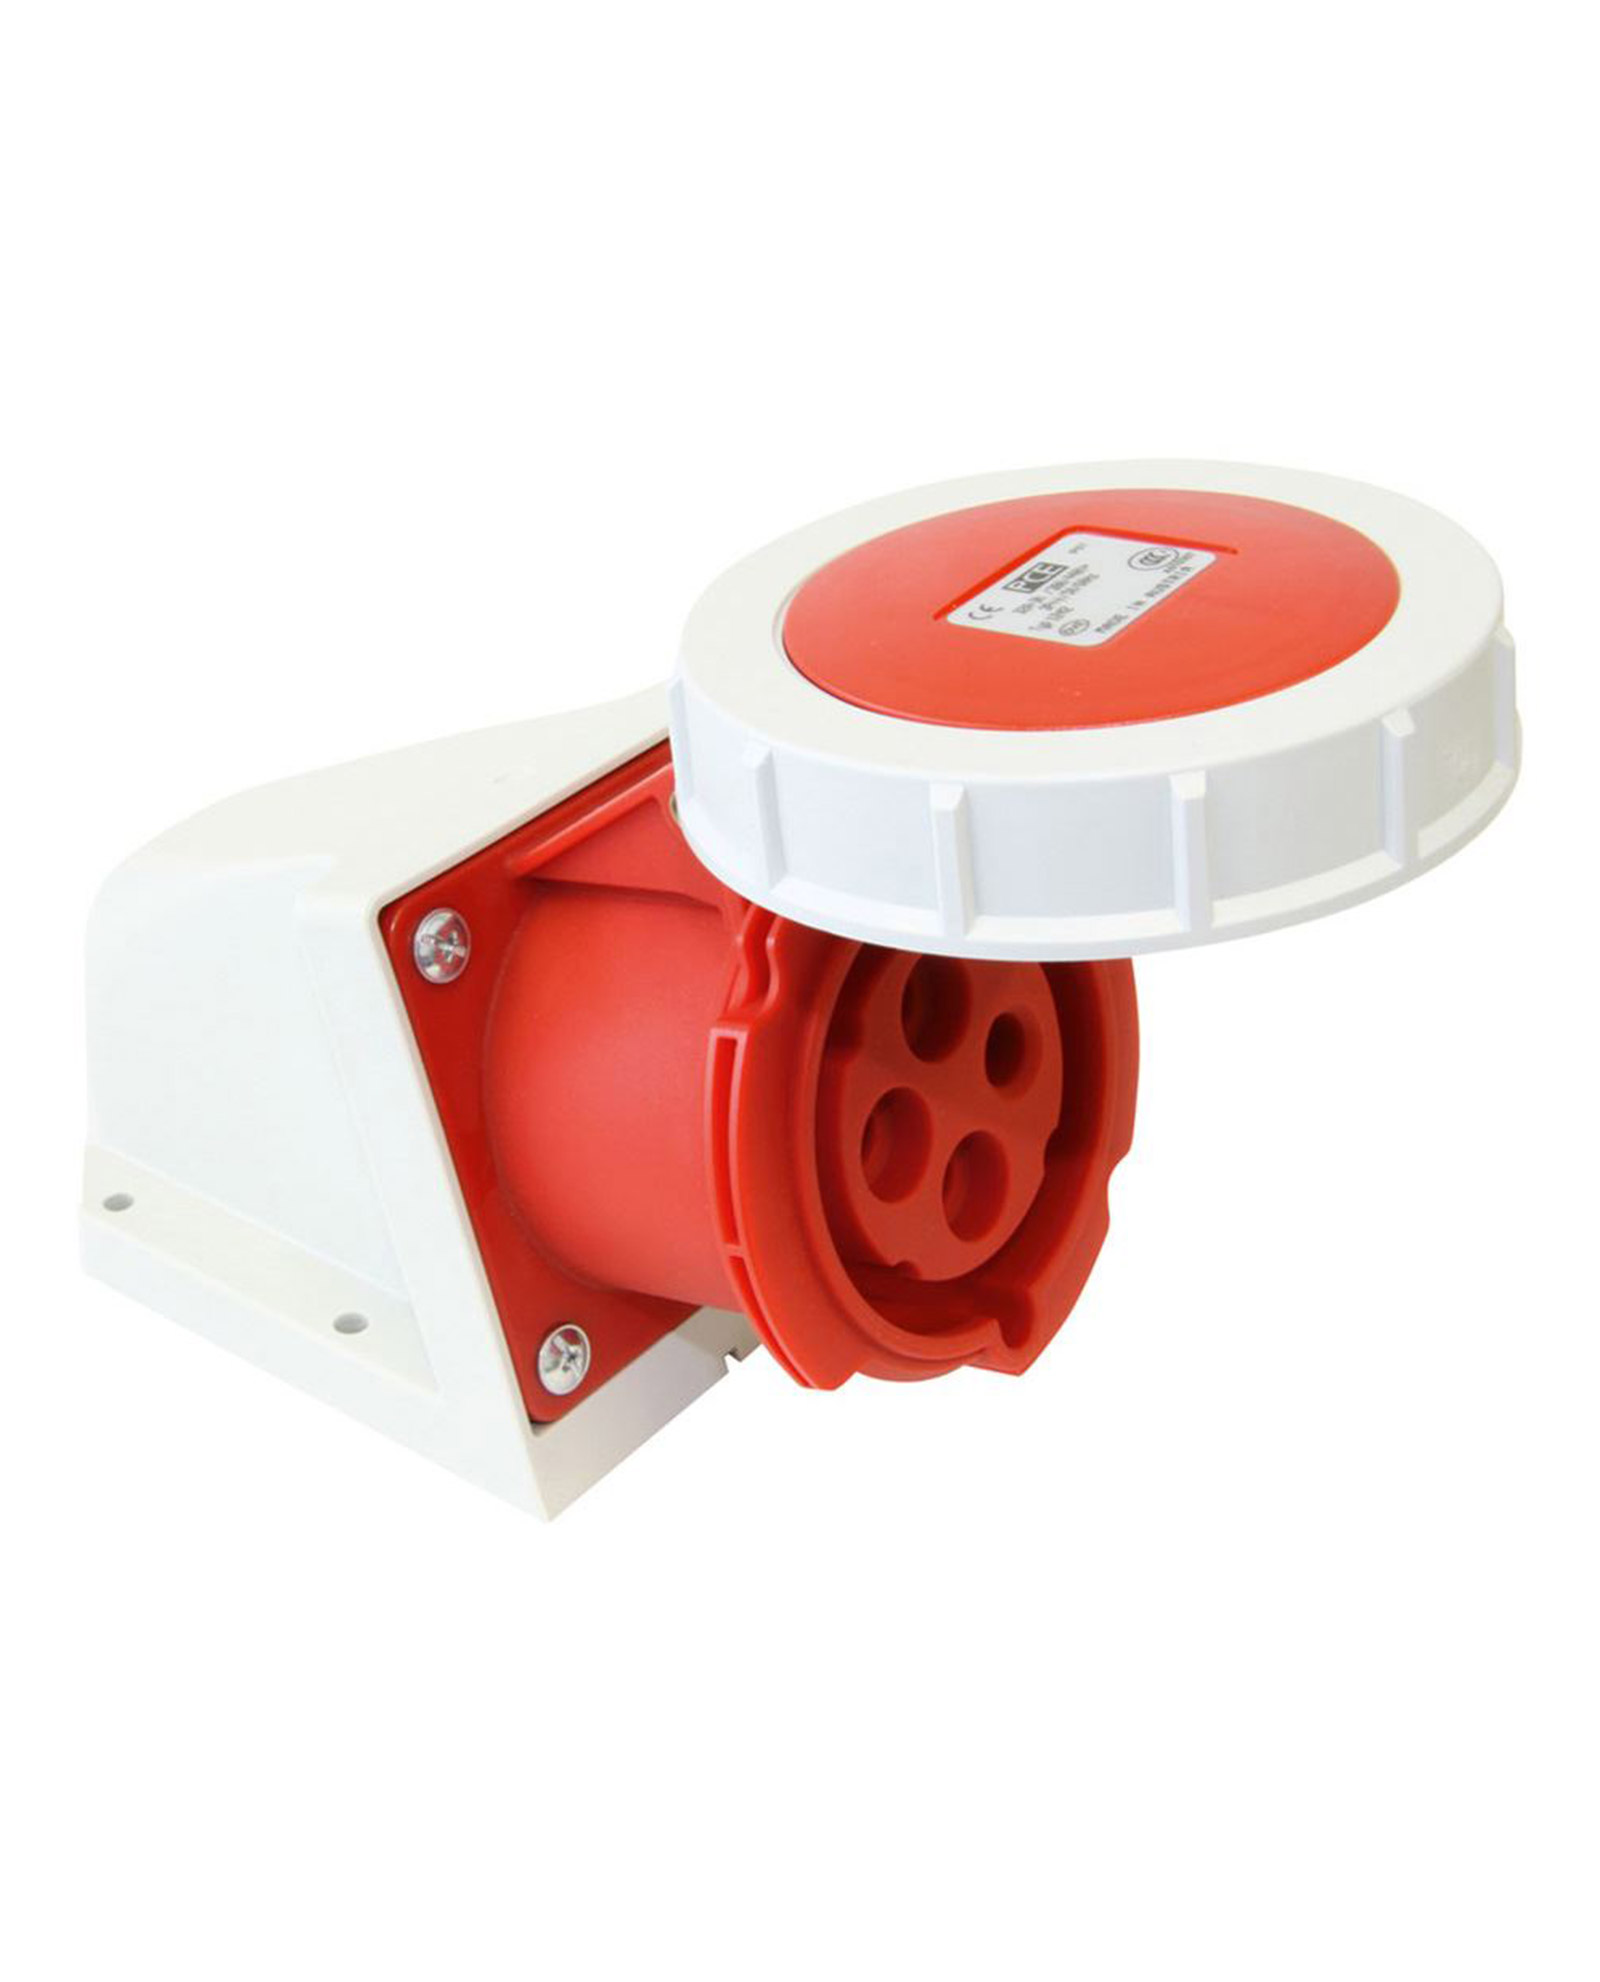 Pce Electric Cce Container Series Cee Wall Socket 32a 4p Ip67